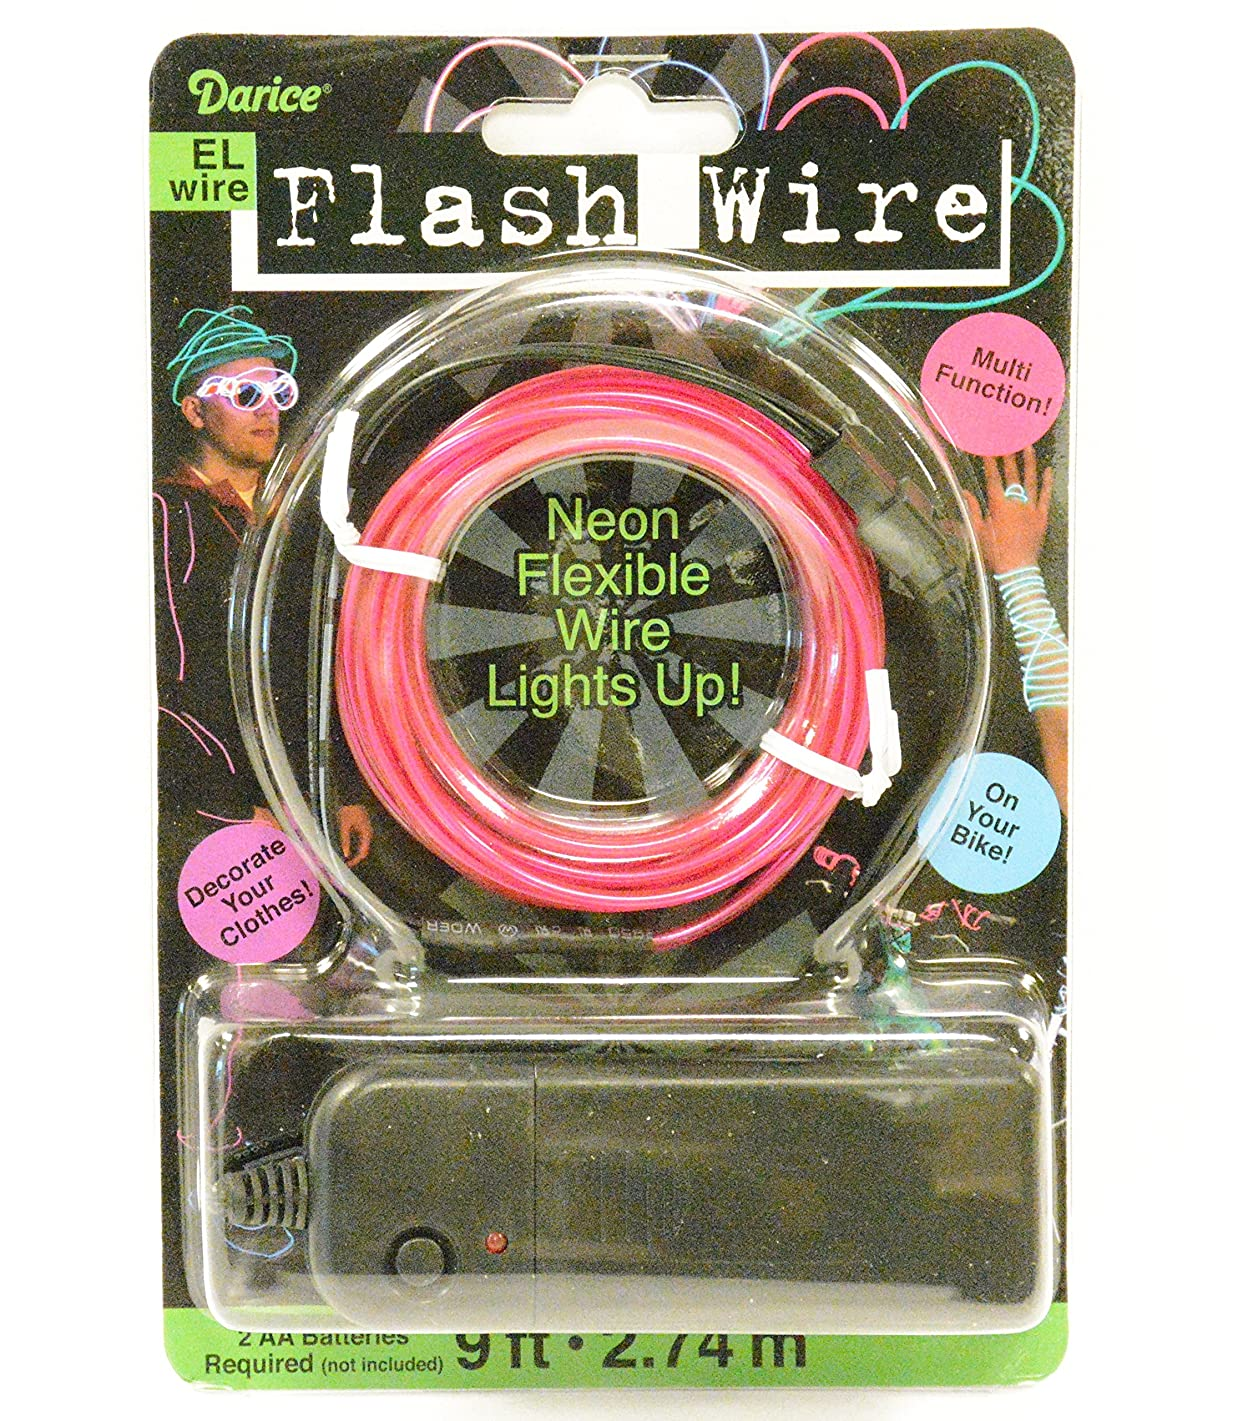 Darice El Flash Wire, Purple